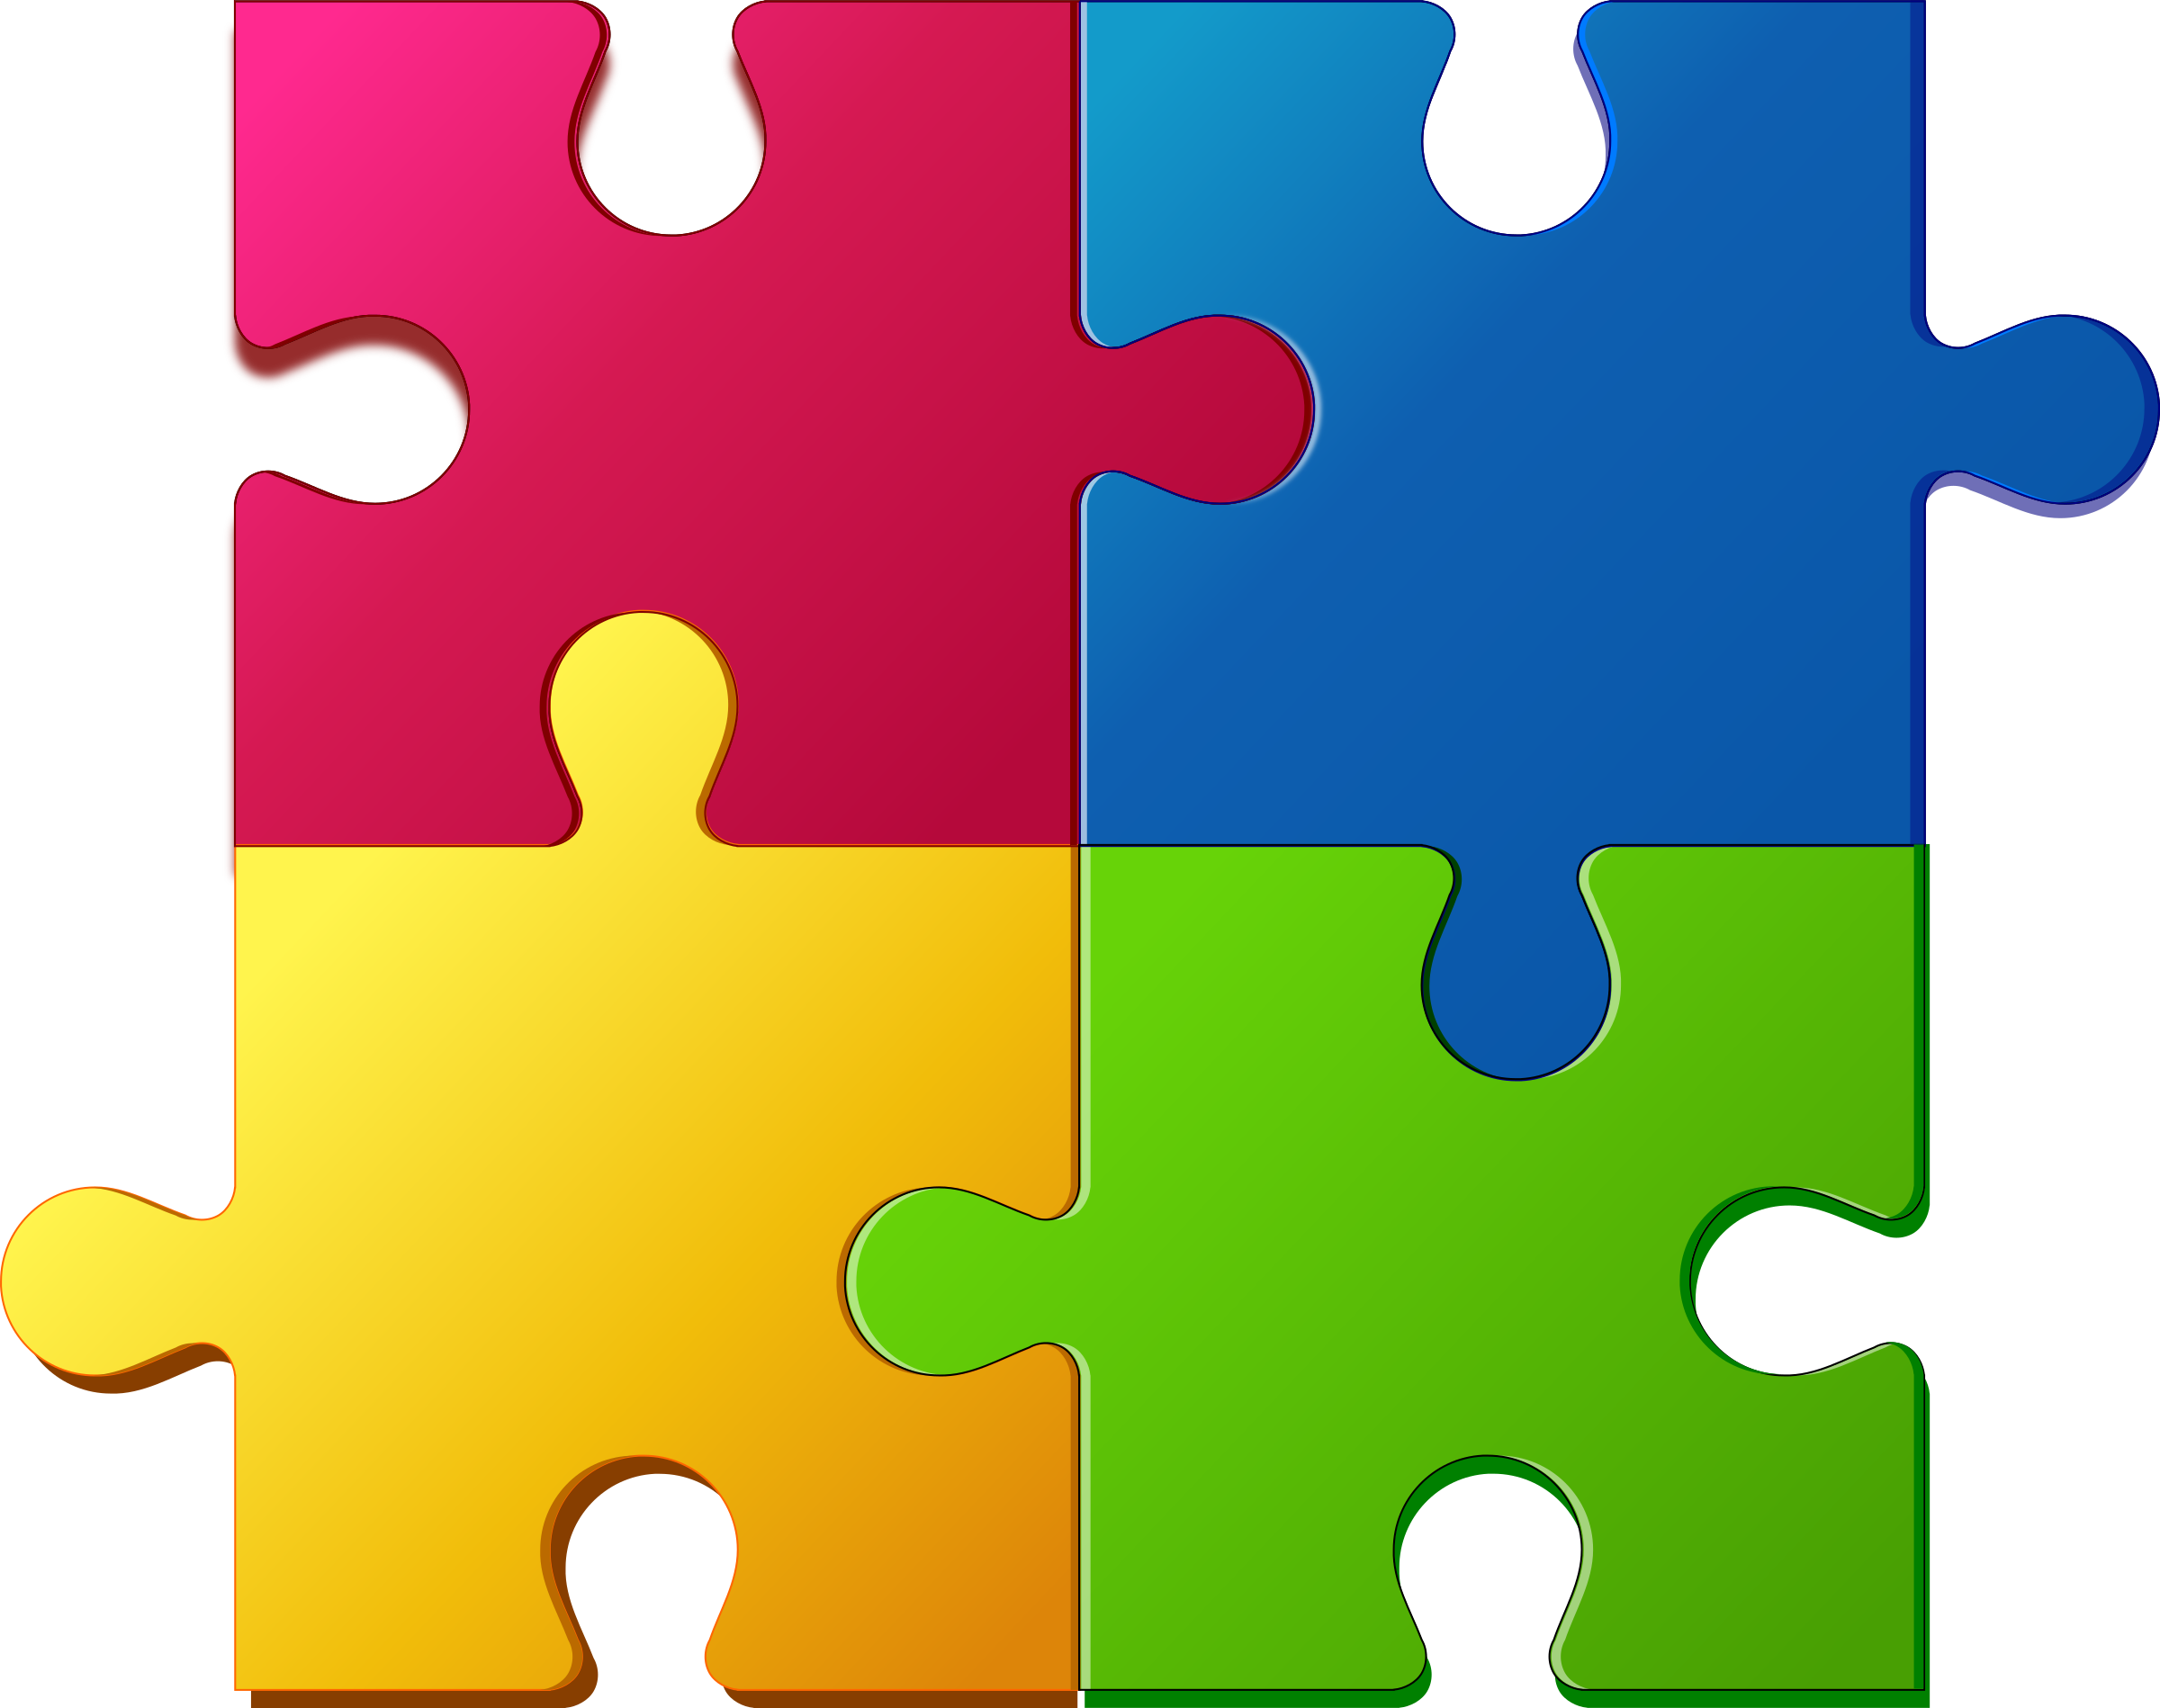 clipart jigsaw puzzle rh openclipart org jigsaw puzzle clipart powerpoint jigsaw puzzle pattern clipart